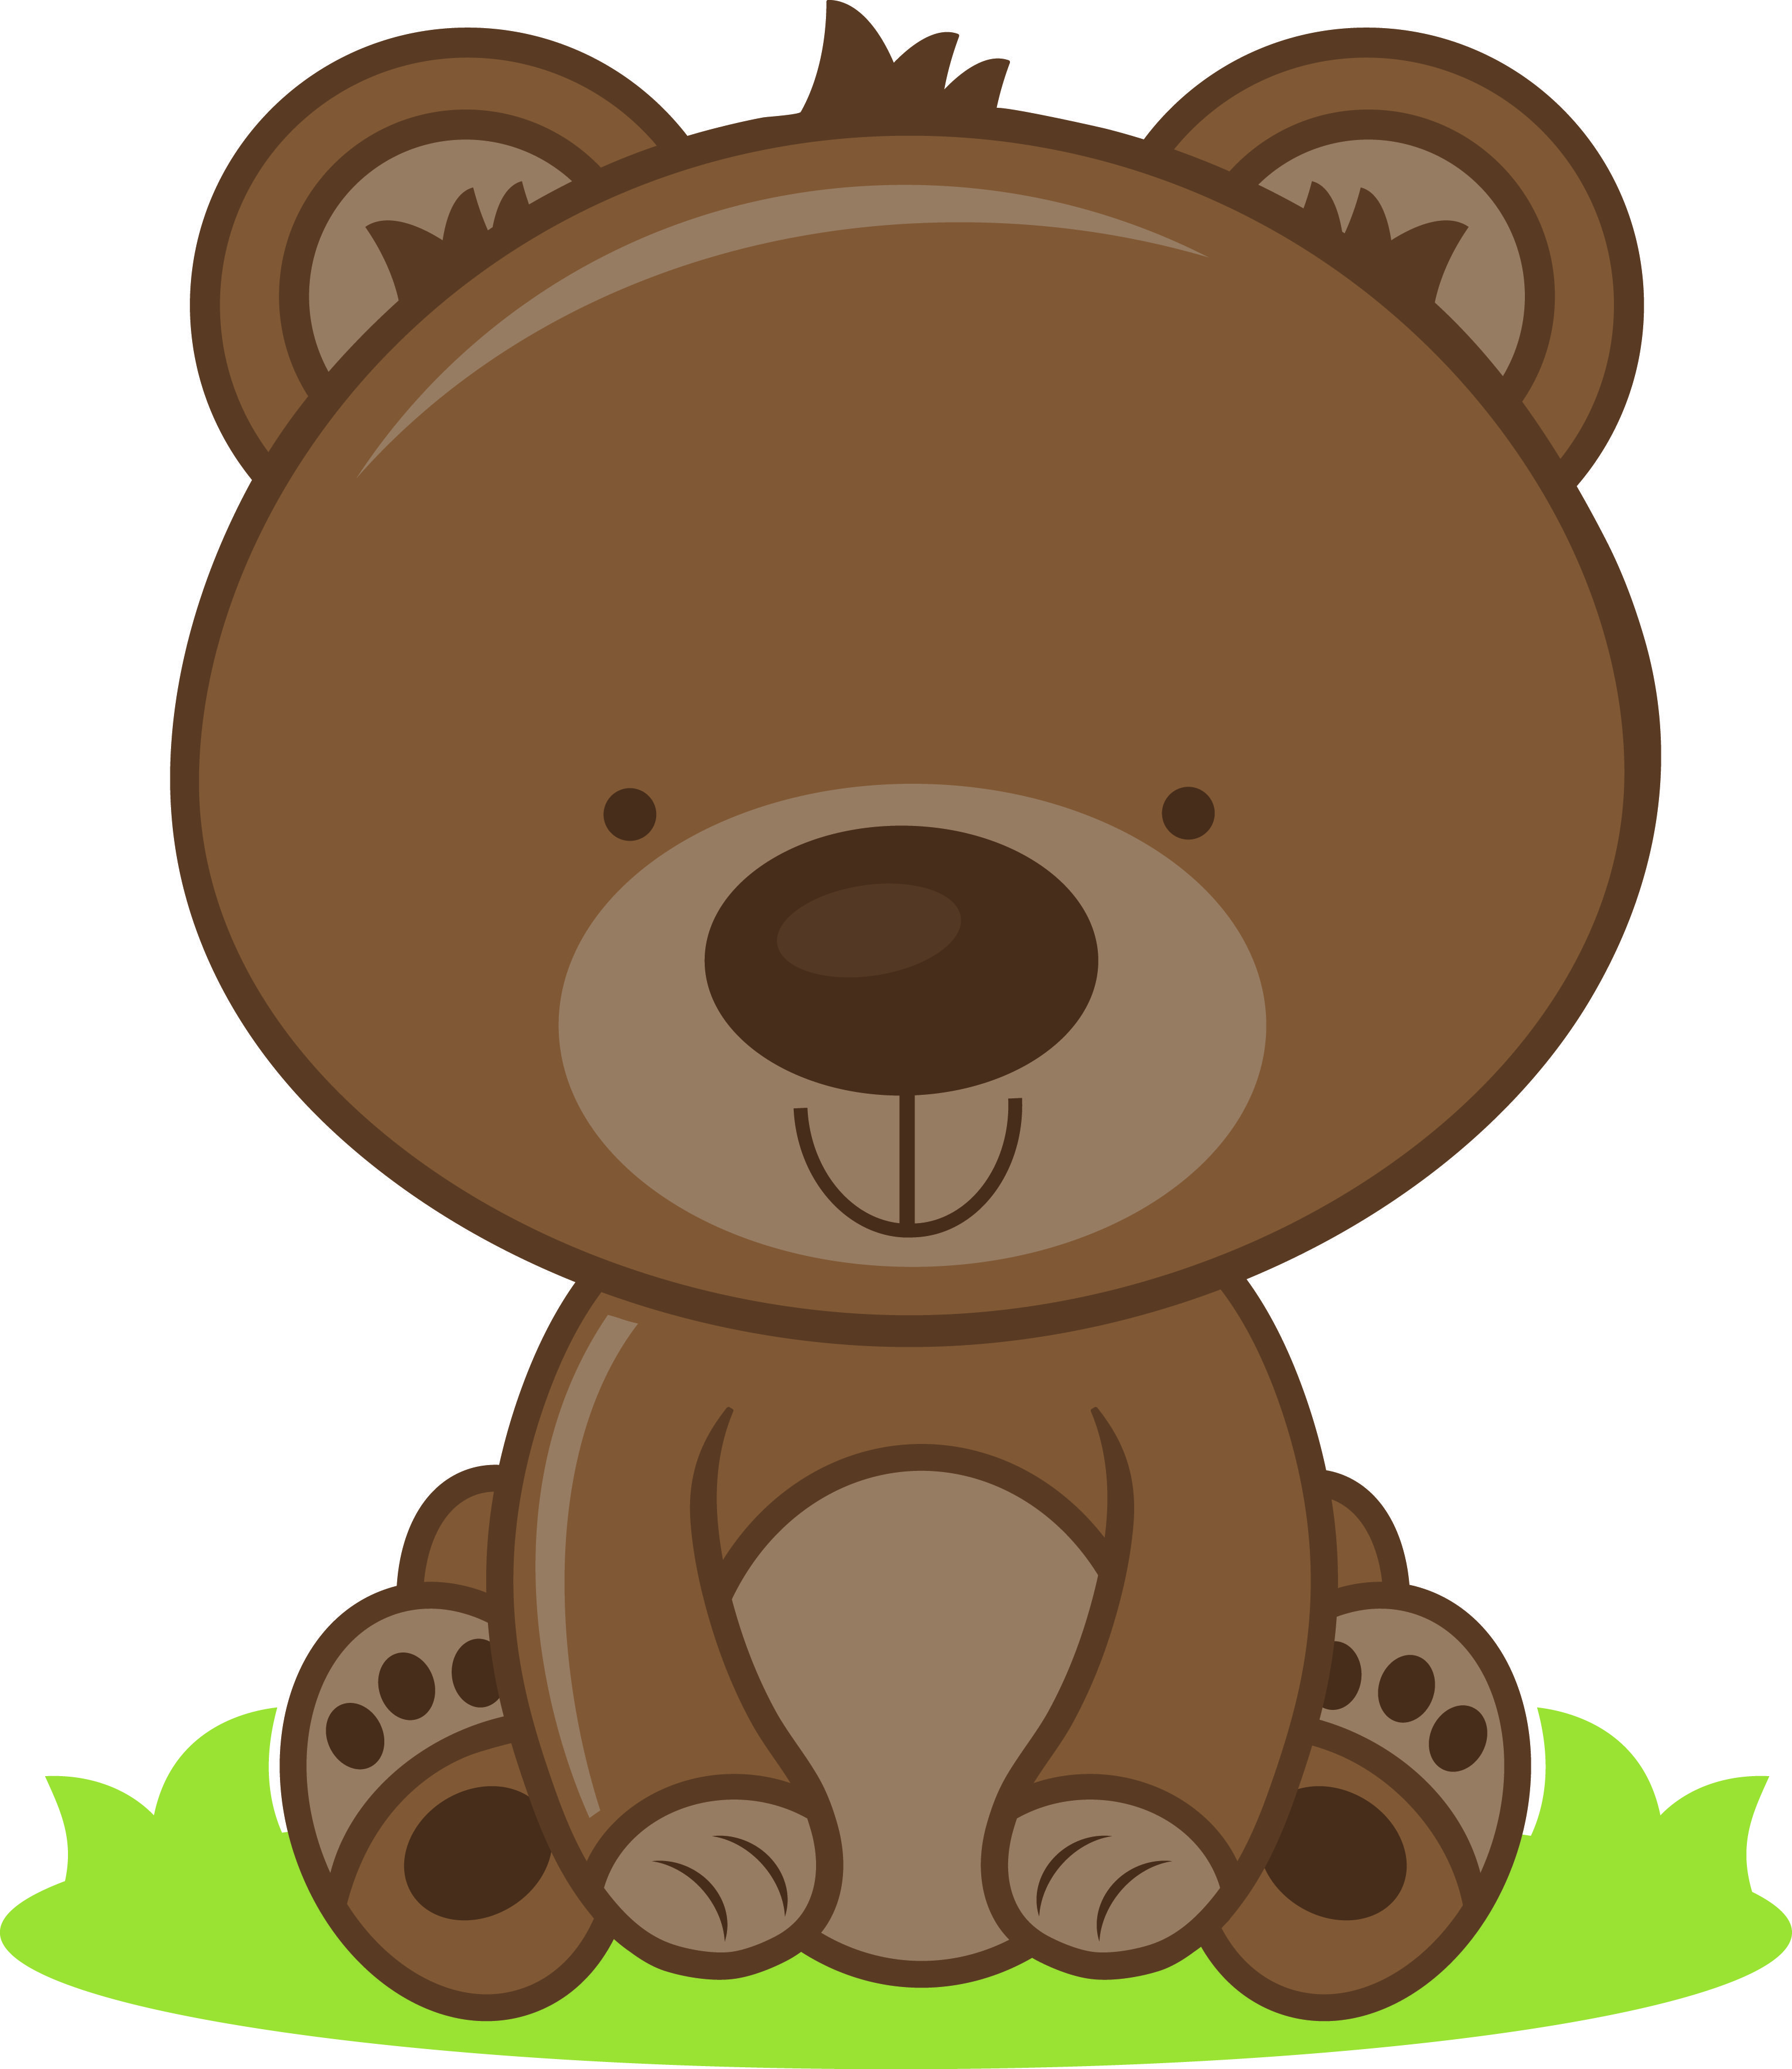 clipart download Woodland bear clipart. Baby jade beaver porcupine